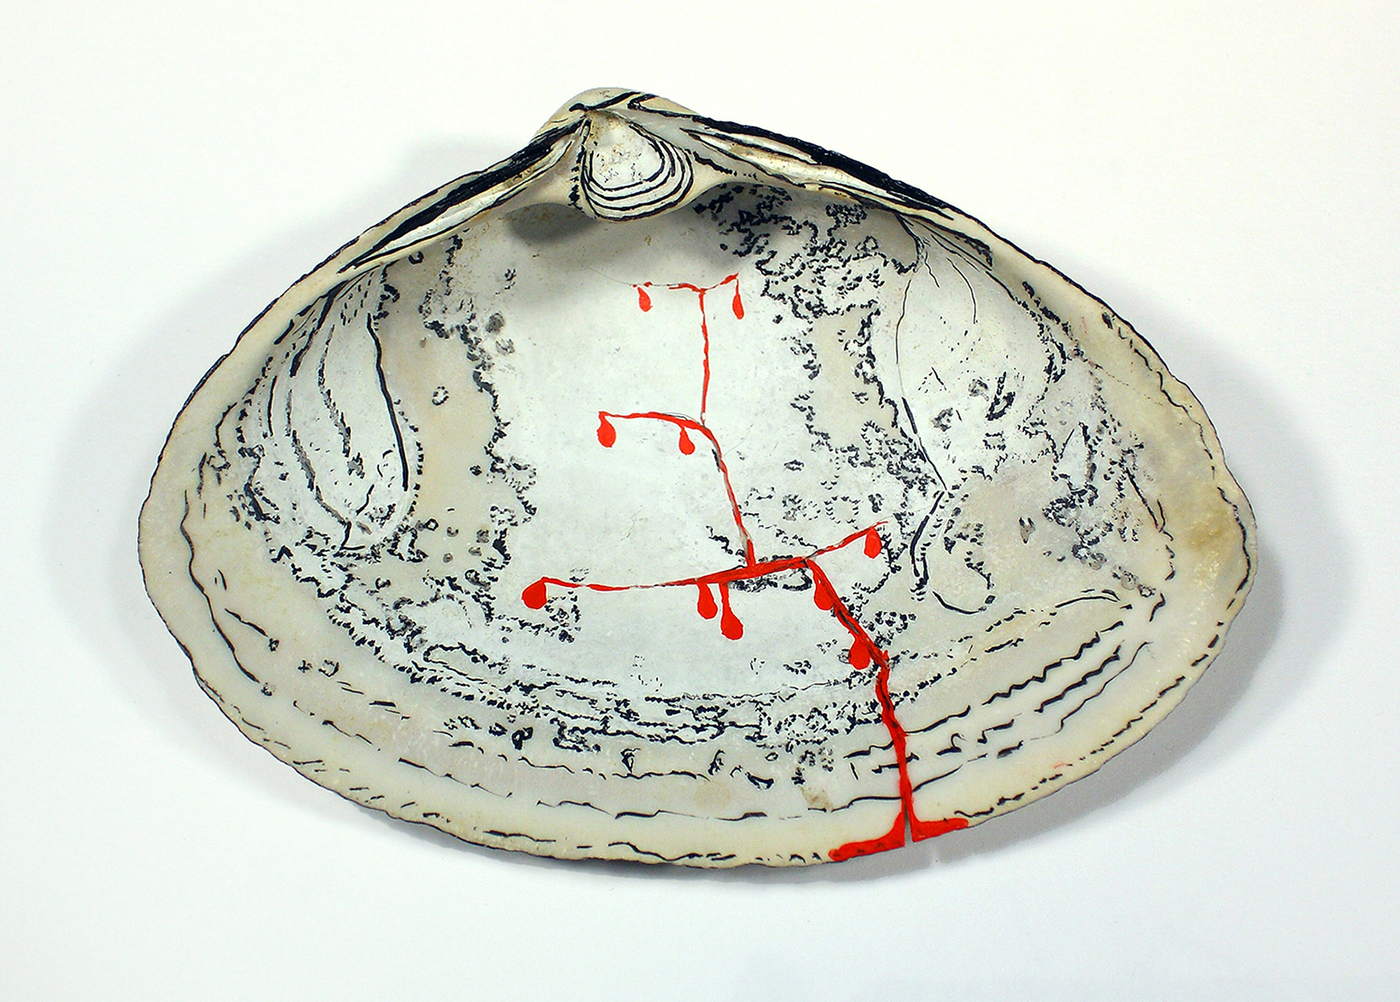 Bridget Mullen Archive Acrylic paint and ink on cracked shell